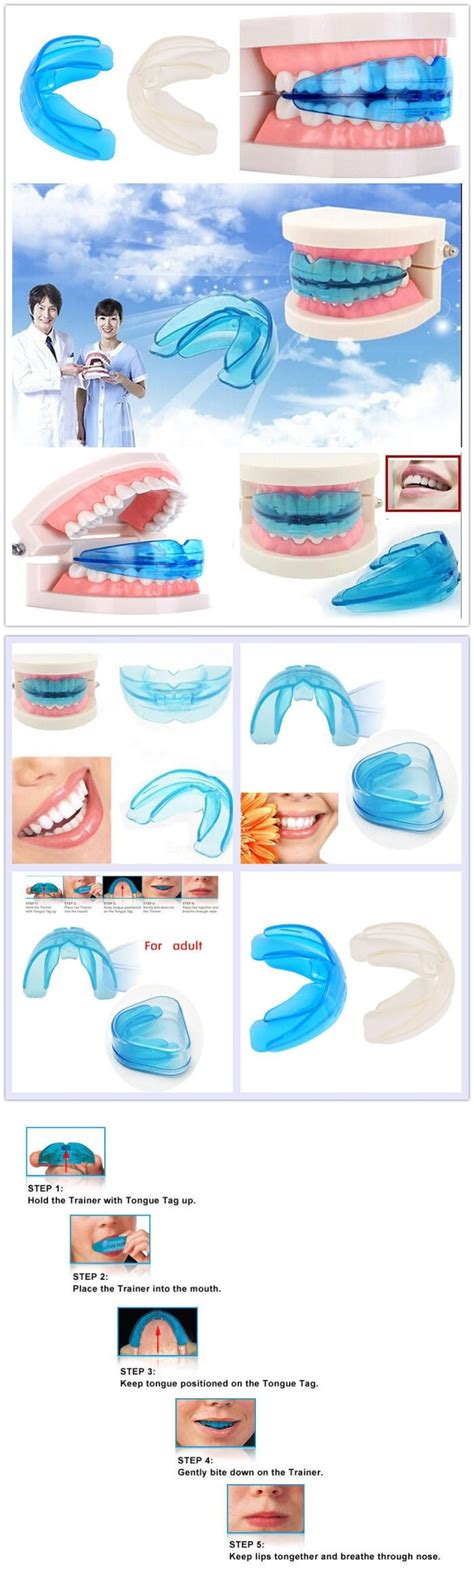 Trainer Ortho Trainer Alignment blue teeth orthodontic trainer alignment tool for lazada malaysia